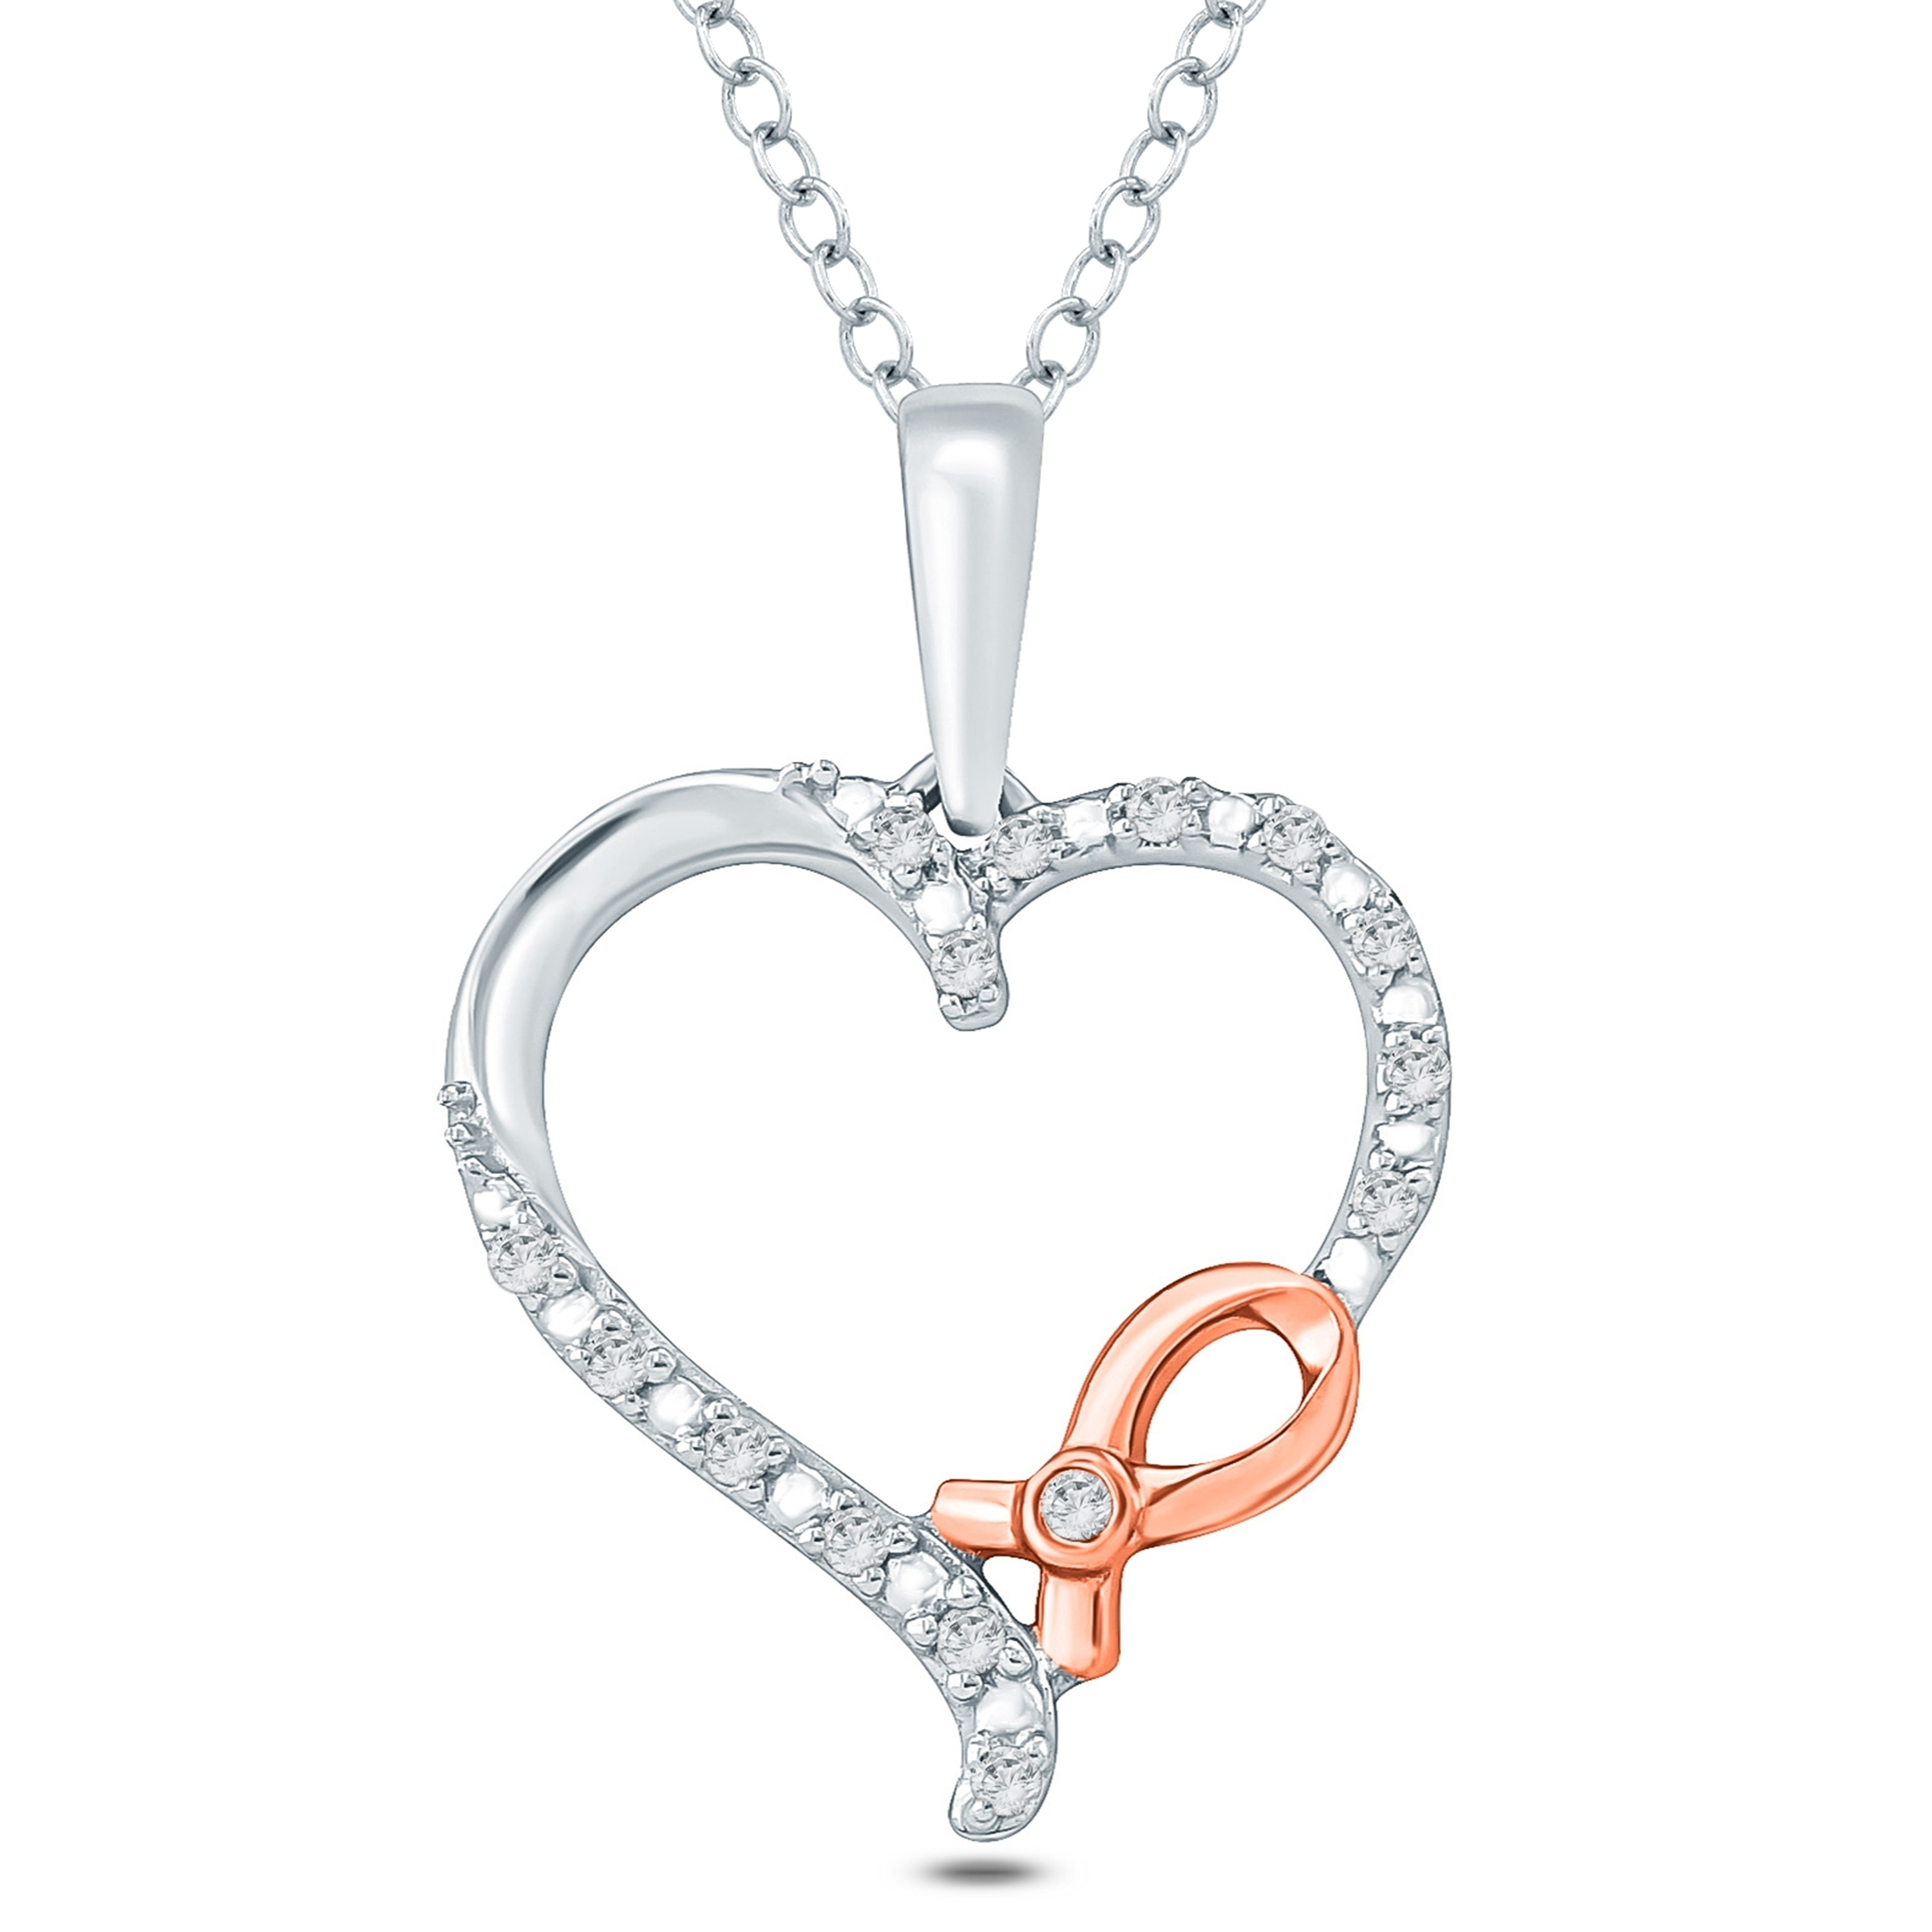 Sterling Silver Diamond Silver Ribbon and Heart Pendant Necklace 0.08 cttw, H-I Color, I1-I2 Clarity